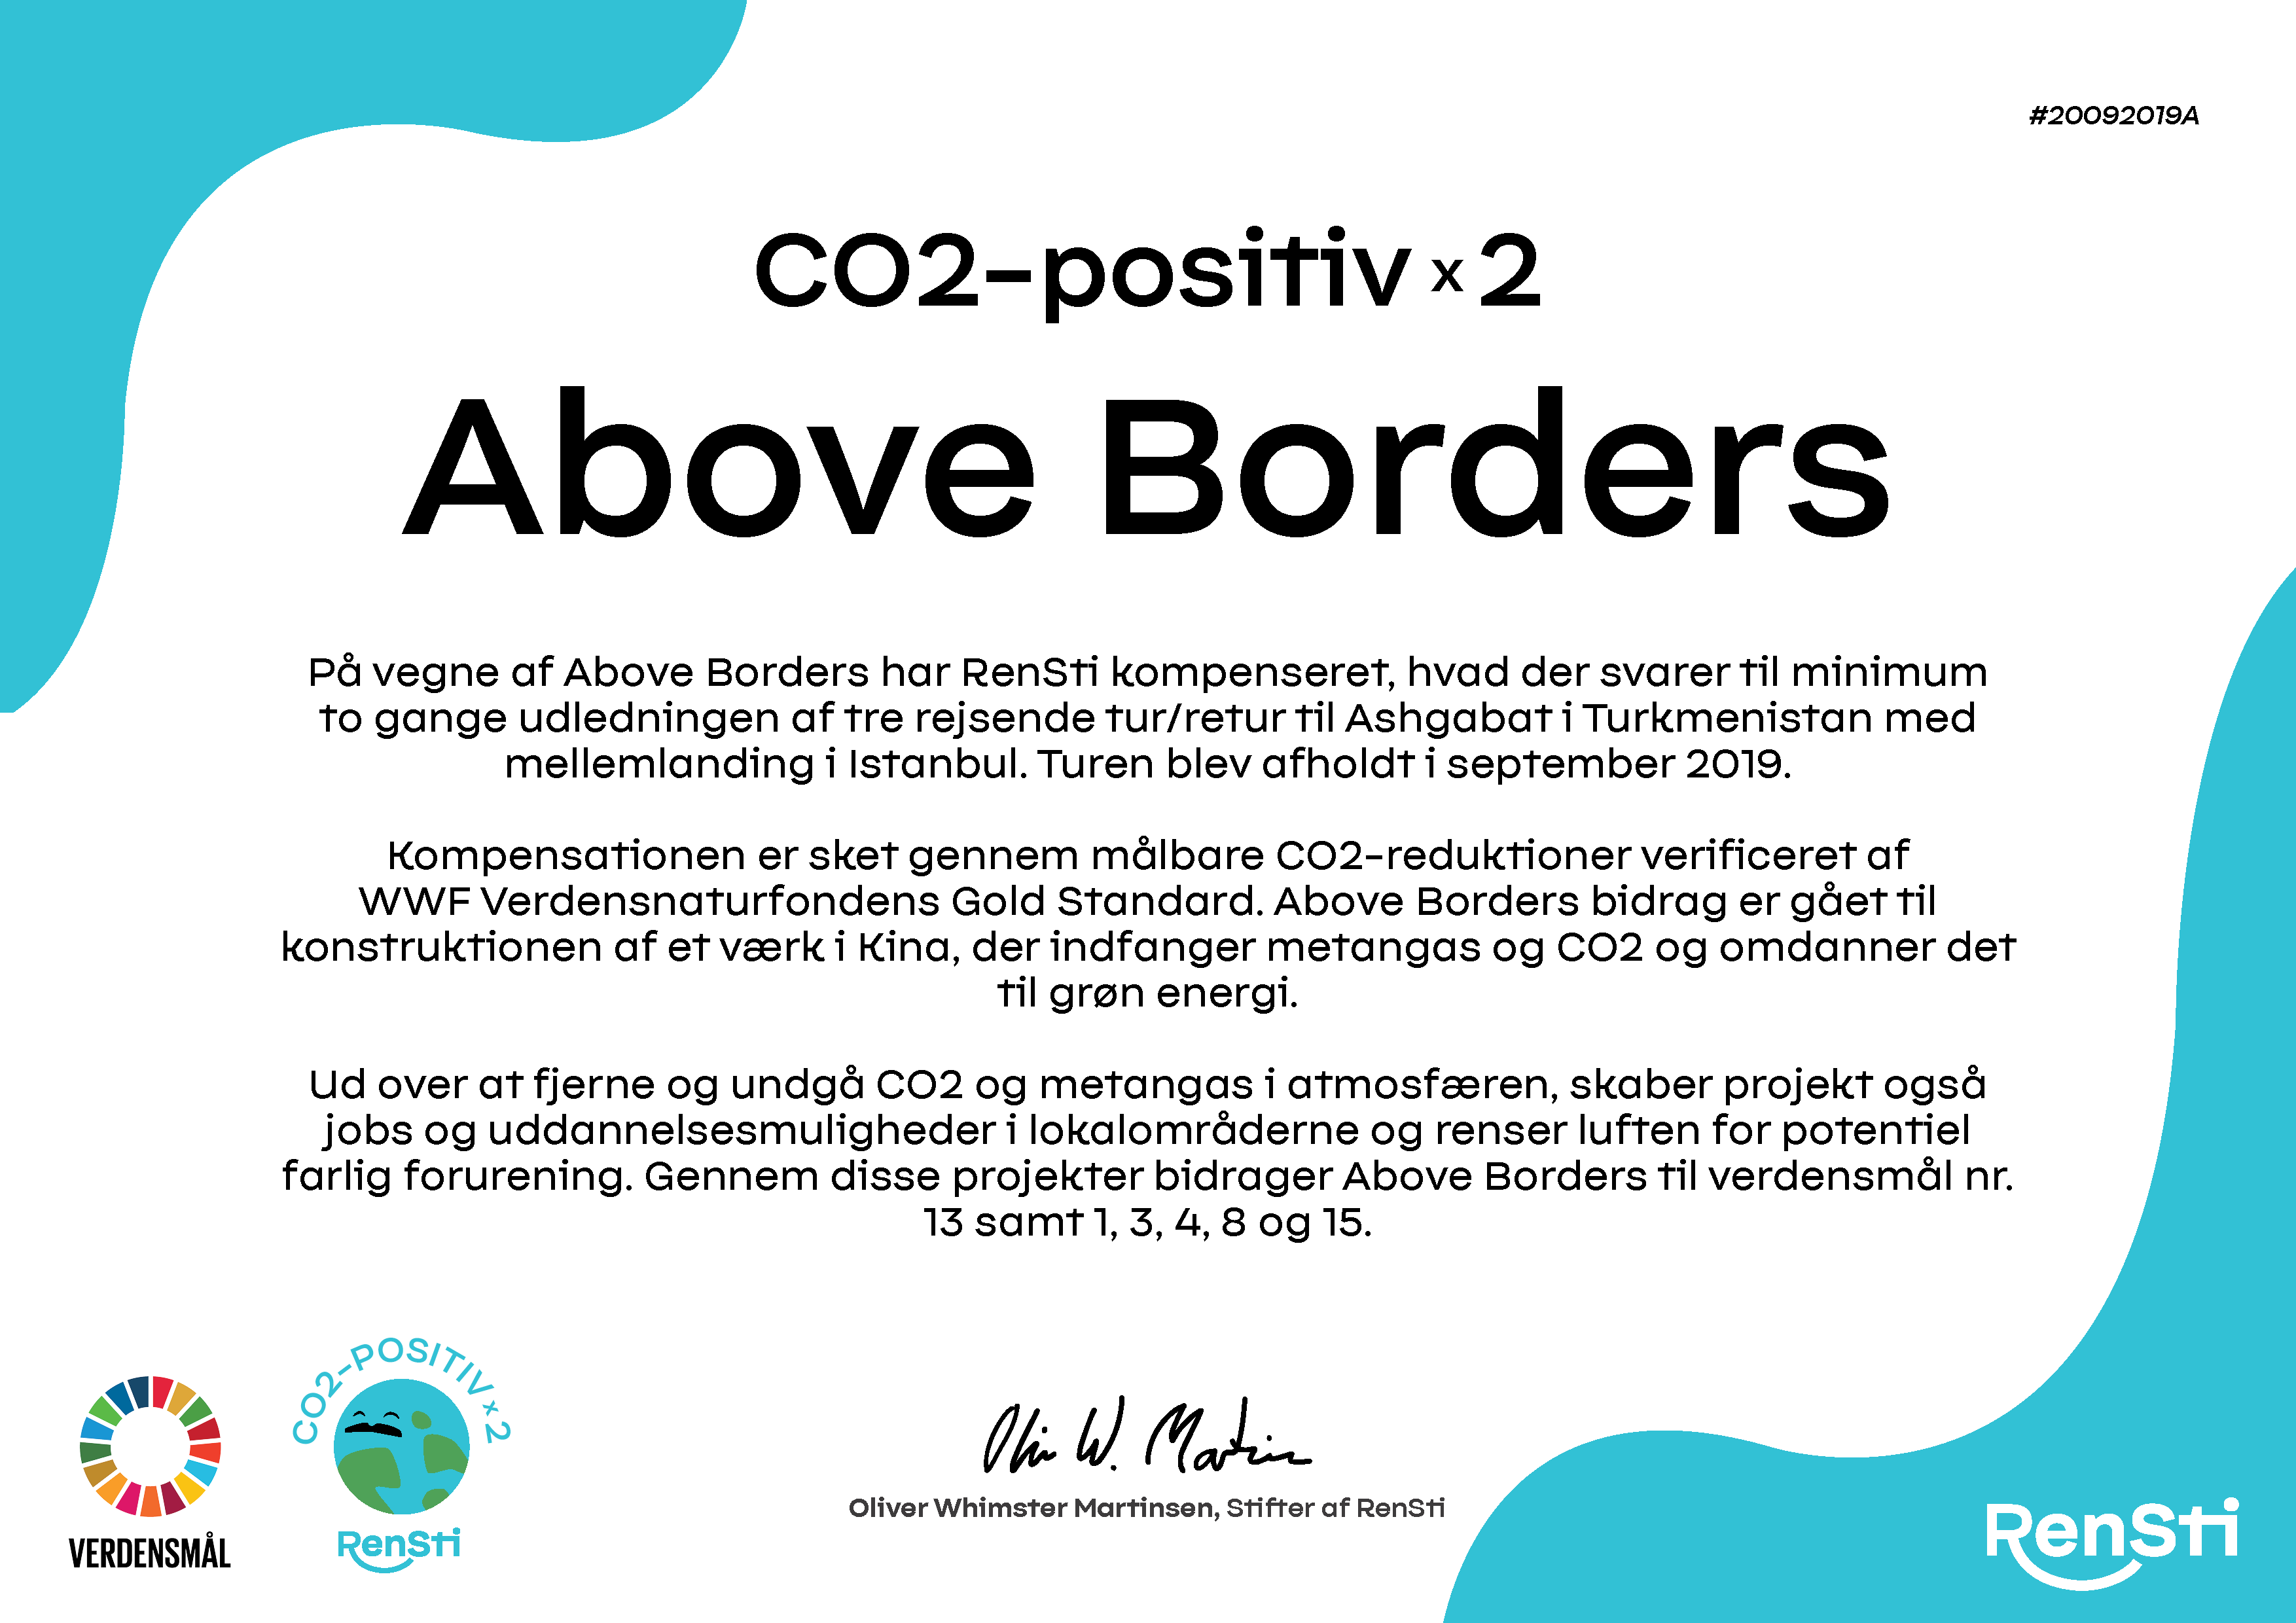 Above_Borders_Turkmenistan_20/9/2019-Certifikat-RenSti